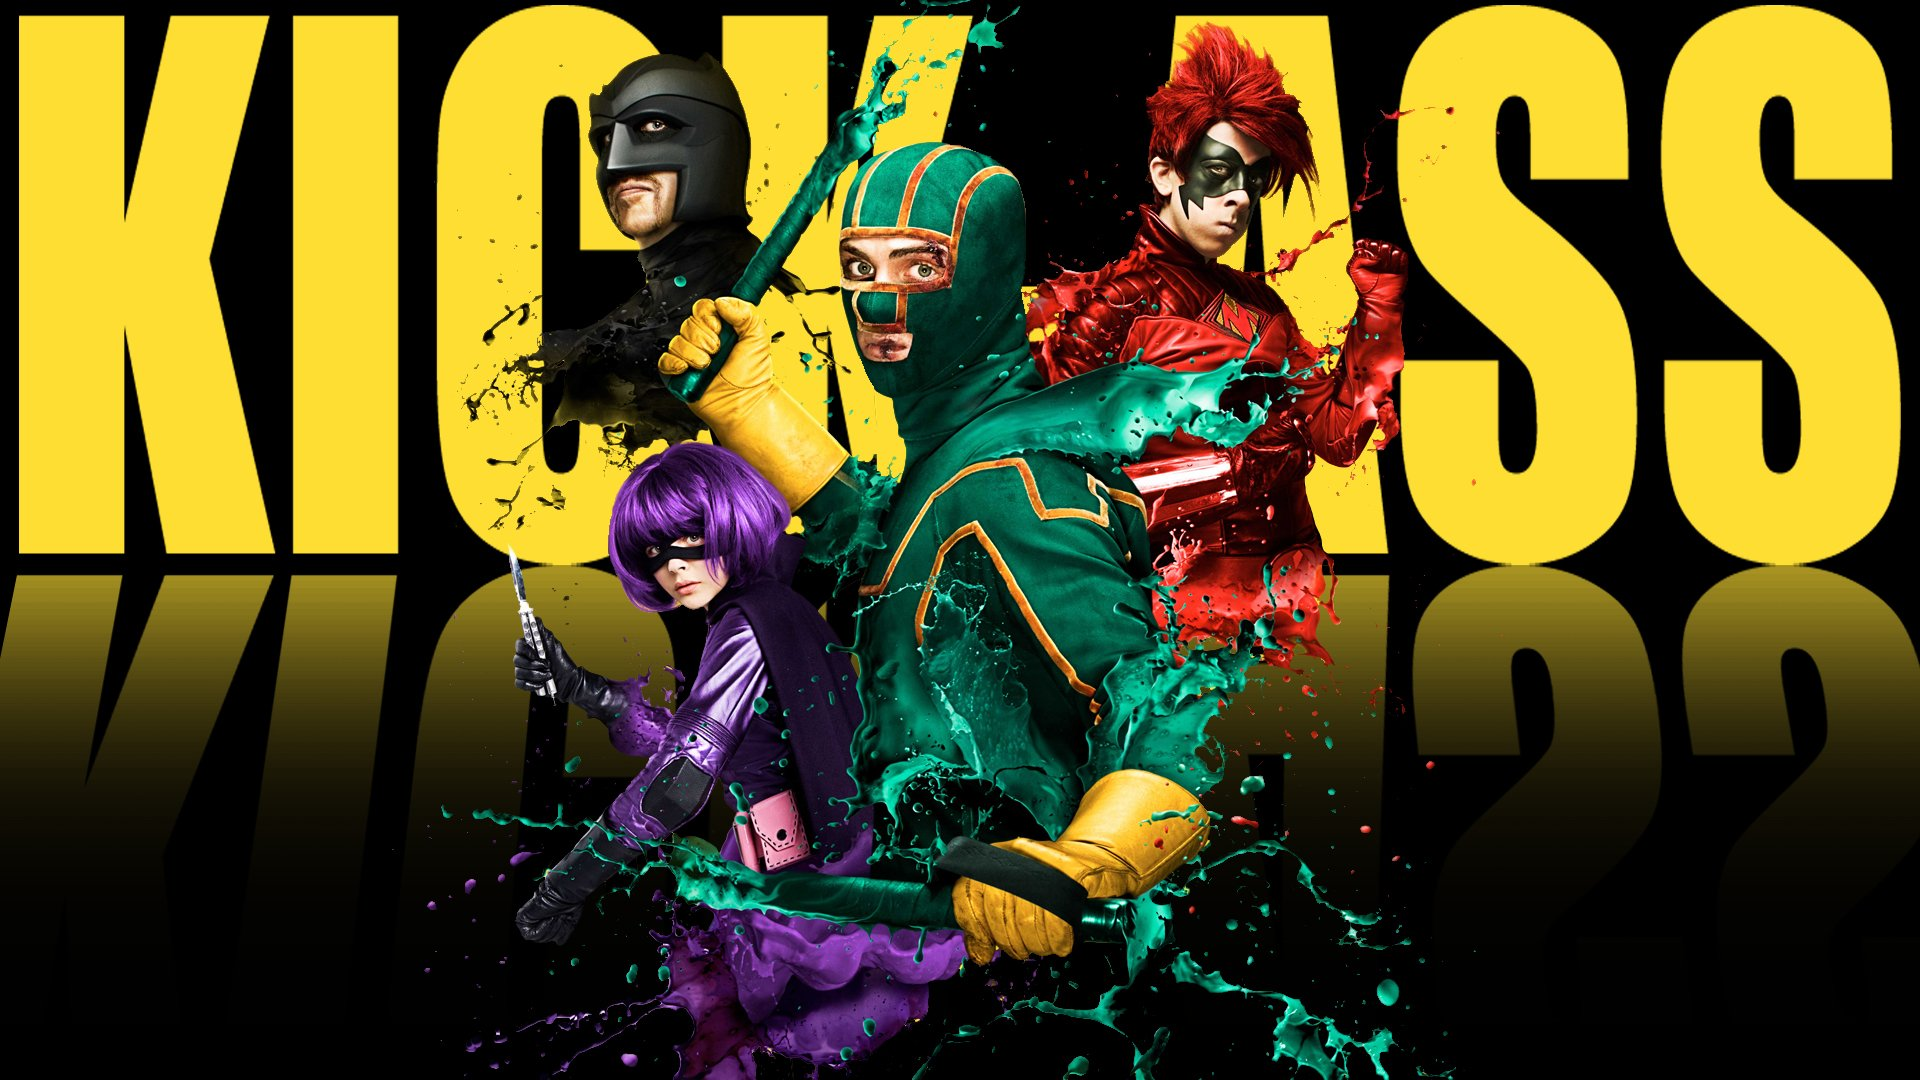 'Kick-Ass' lacks thematic consistency but packs in a lot of guilty fun